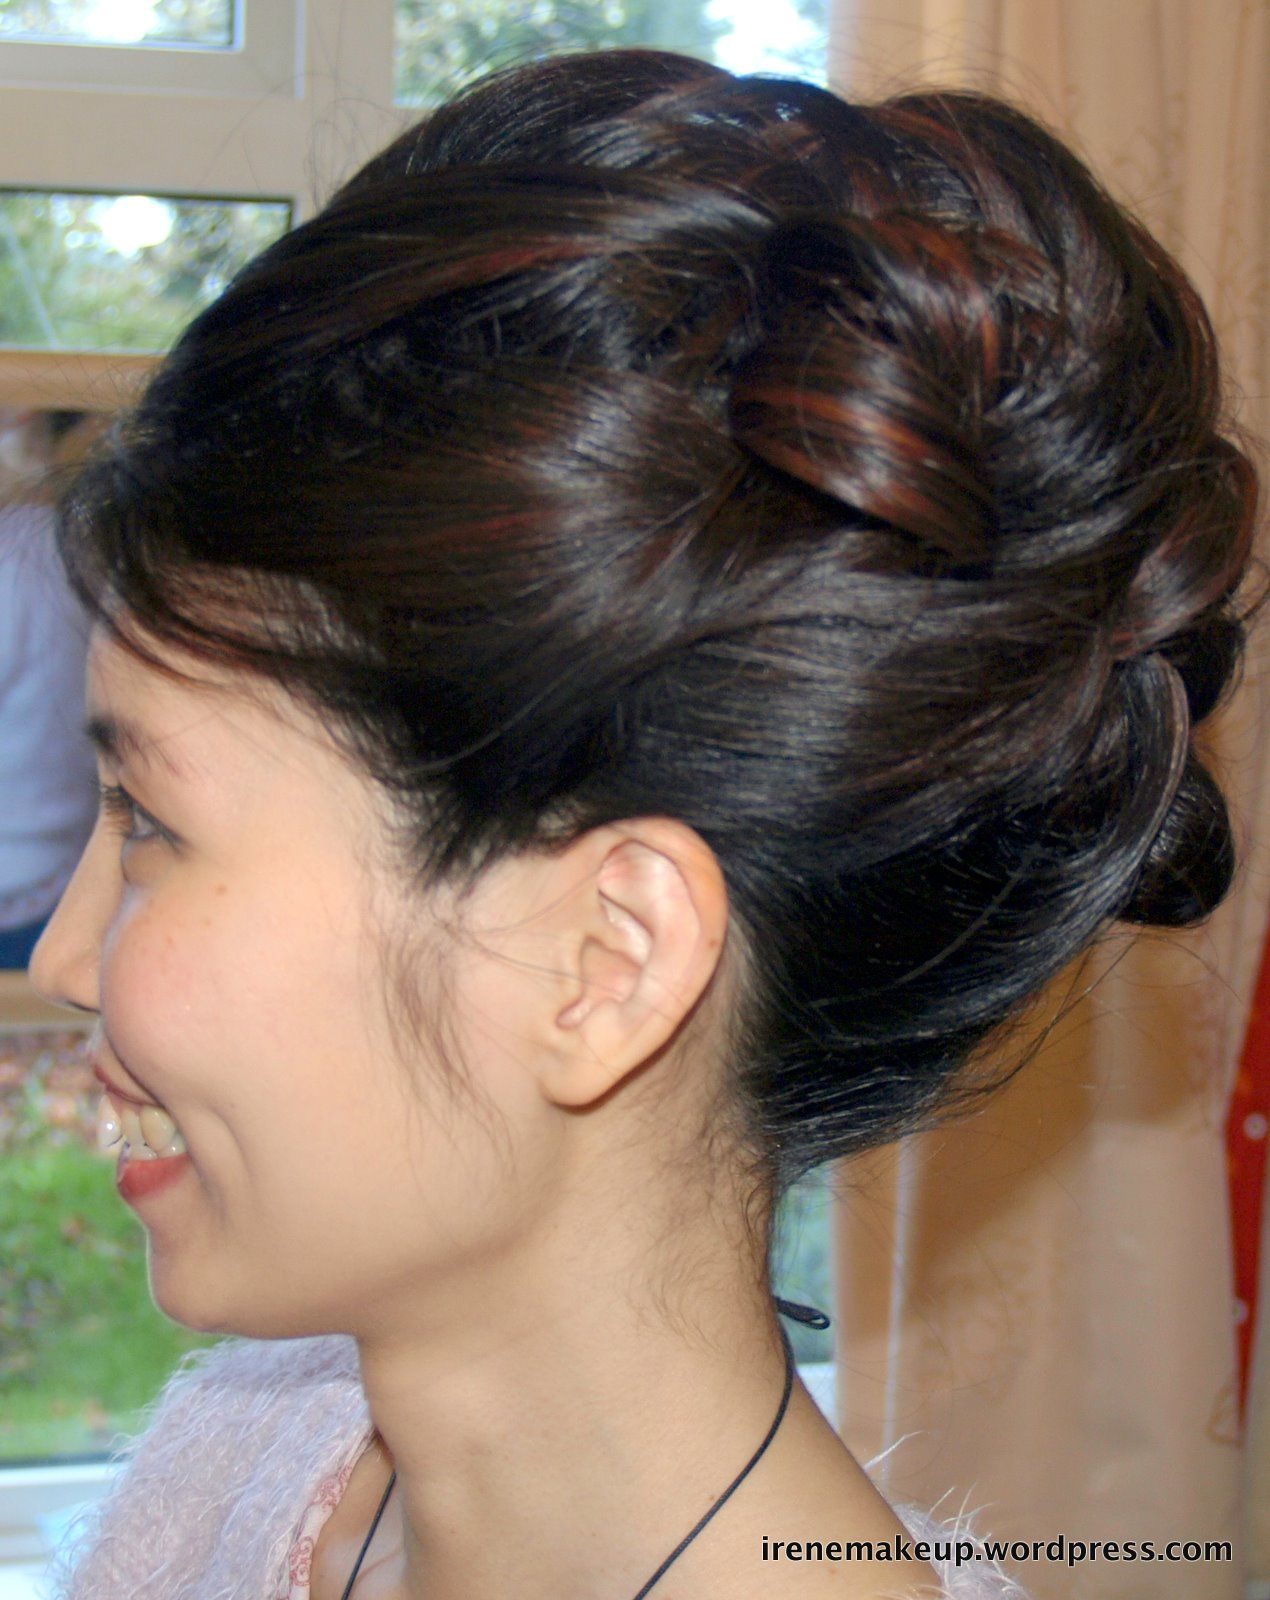 Wedding updos for long hair elegant wedding hairstyles wedding updos - We Have Photos Of Bridal Hair Styles For Long Hair Whether It Is Classic Sleek Updo Or Soft Romantic Updo